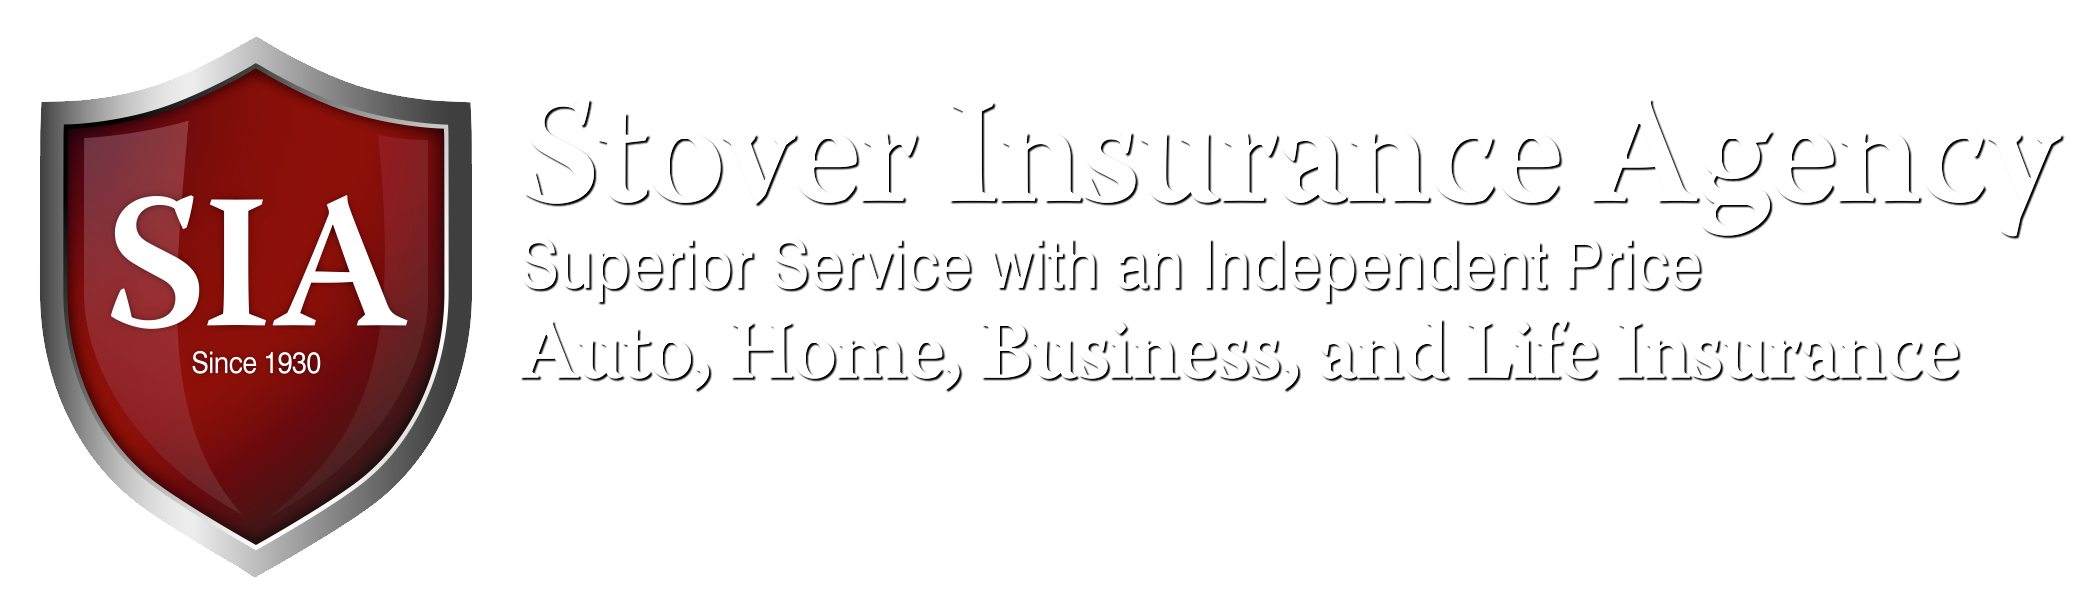 Stover Insurance Agency homepage